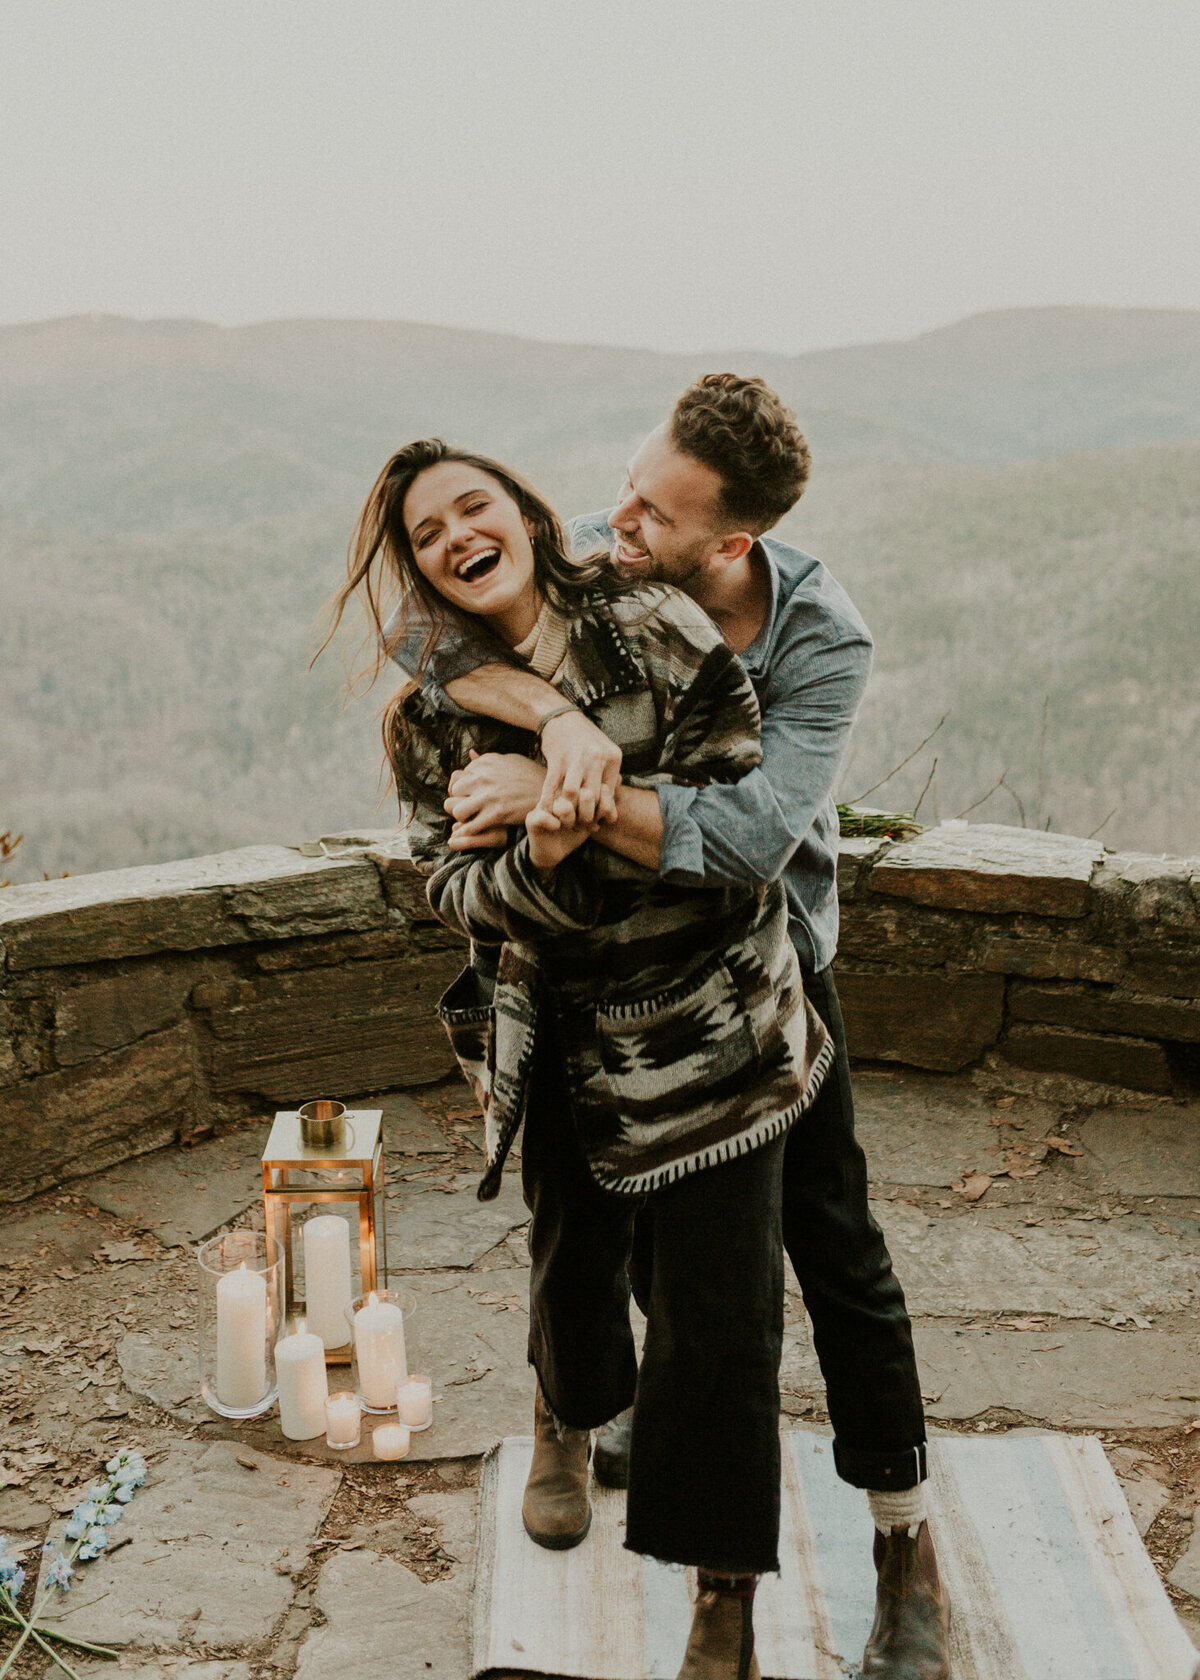 Asheville-North-Carolina-proposal-in-the-mountains_Boho-proposal-inspiration_Adventurous-couples-session_Asheville-Wedding-Photographer_Anna-Ray-Photography-80